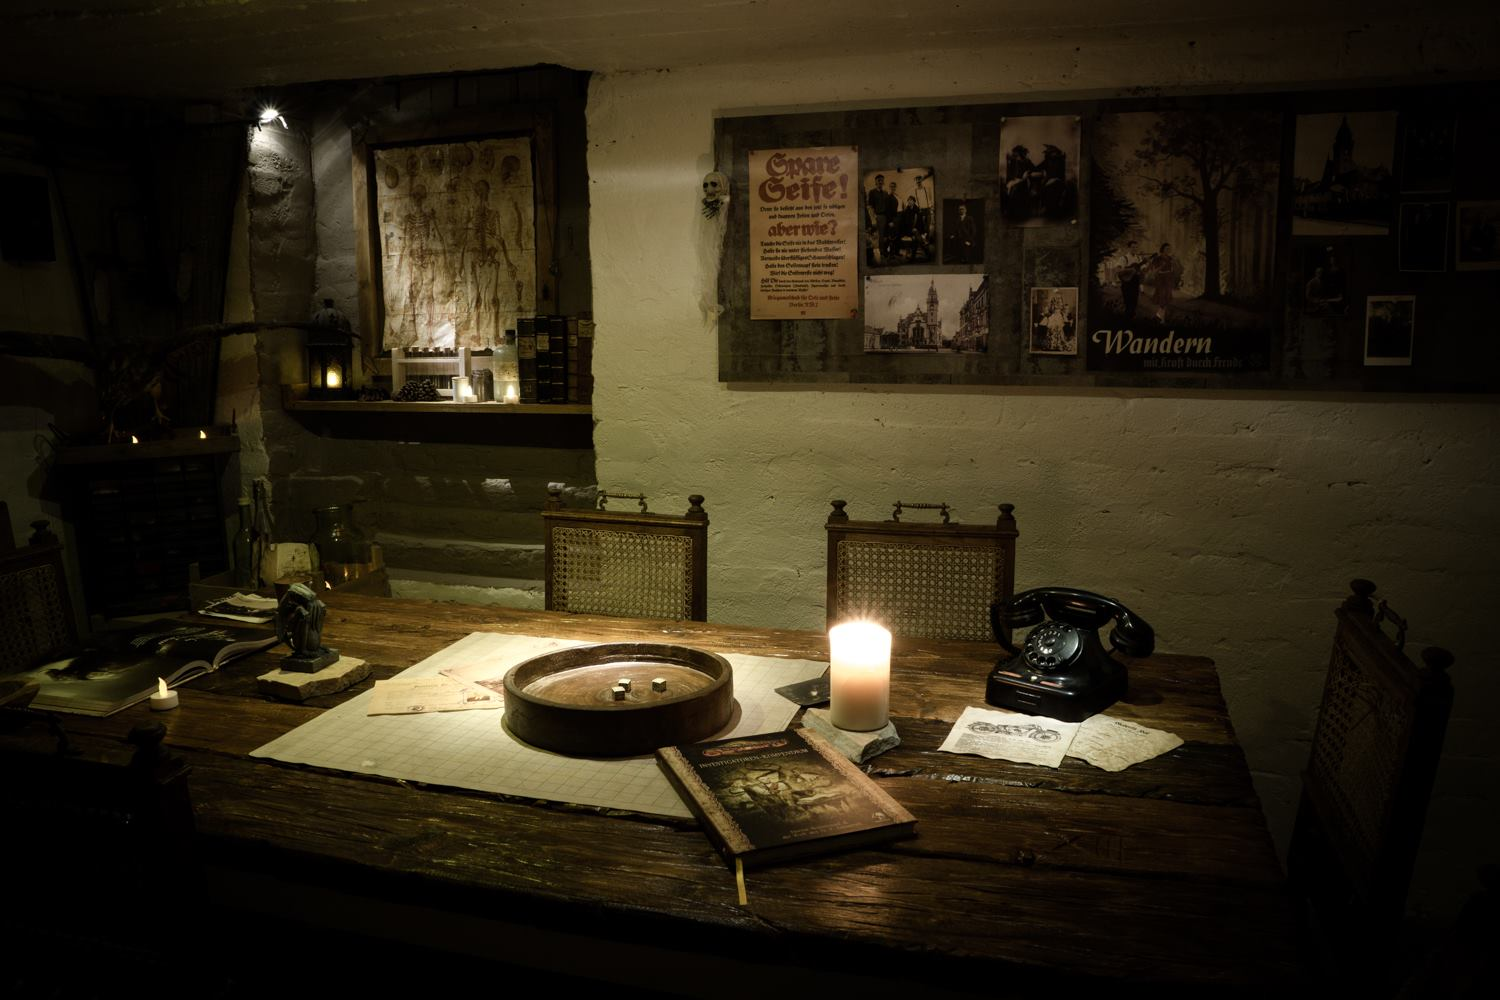 Propnomicon Call Of Cthulhu Game Room